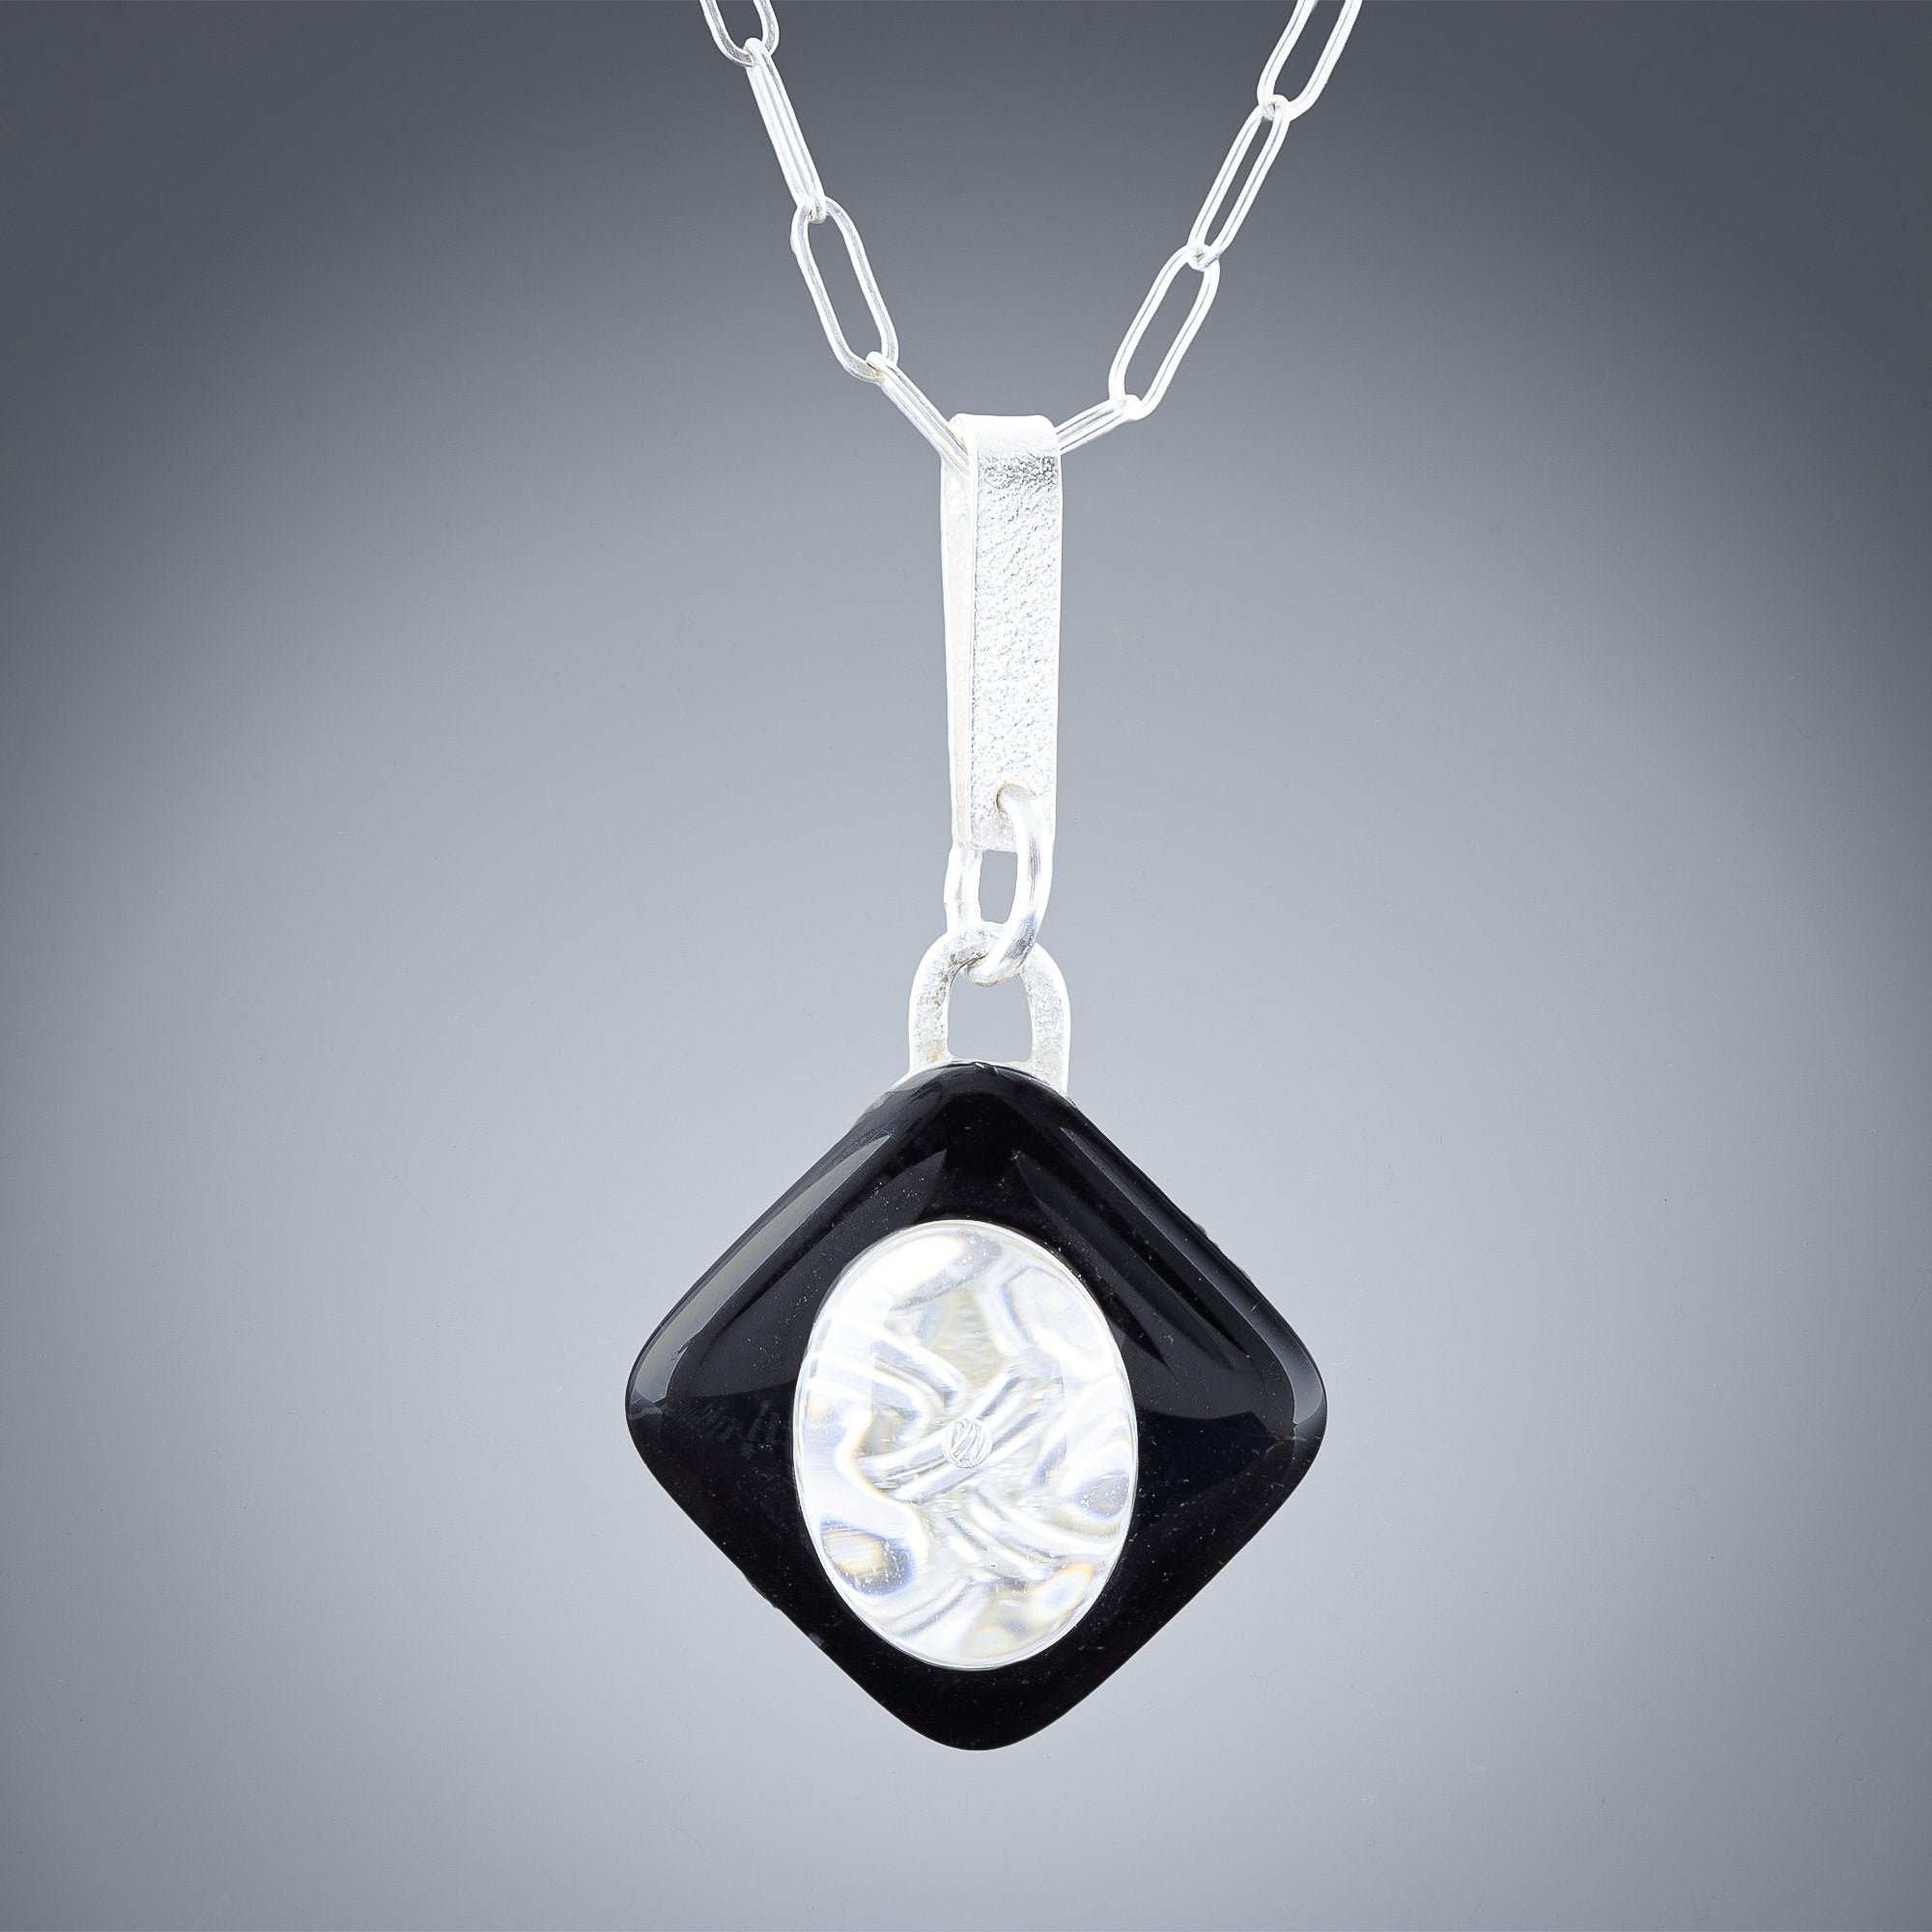 Woven Contrast Medium Pendant in Silver